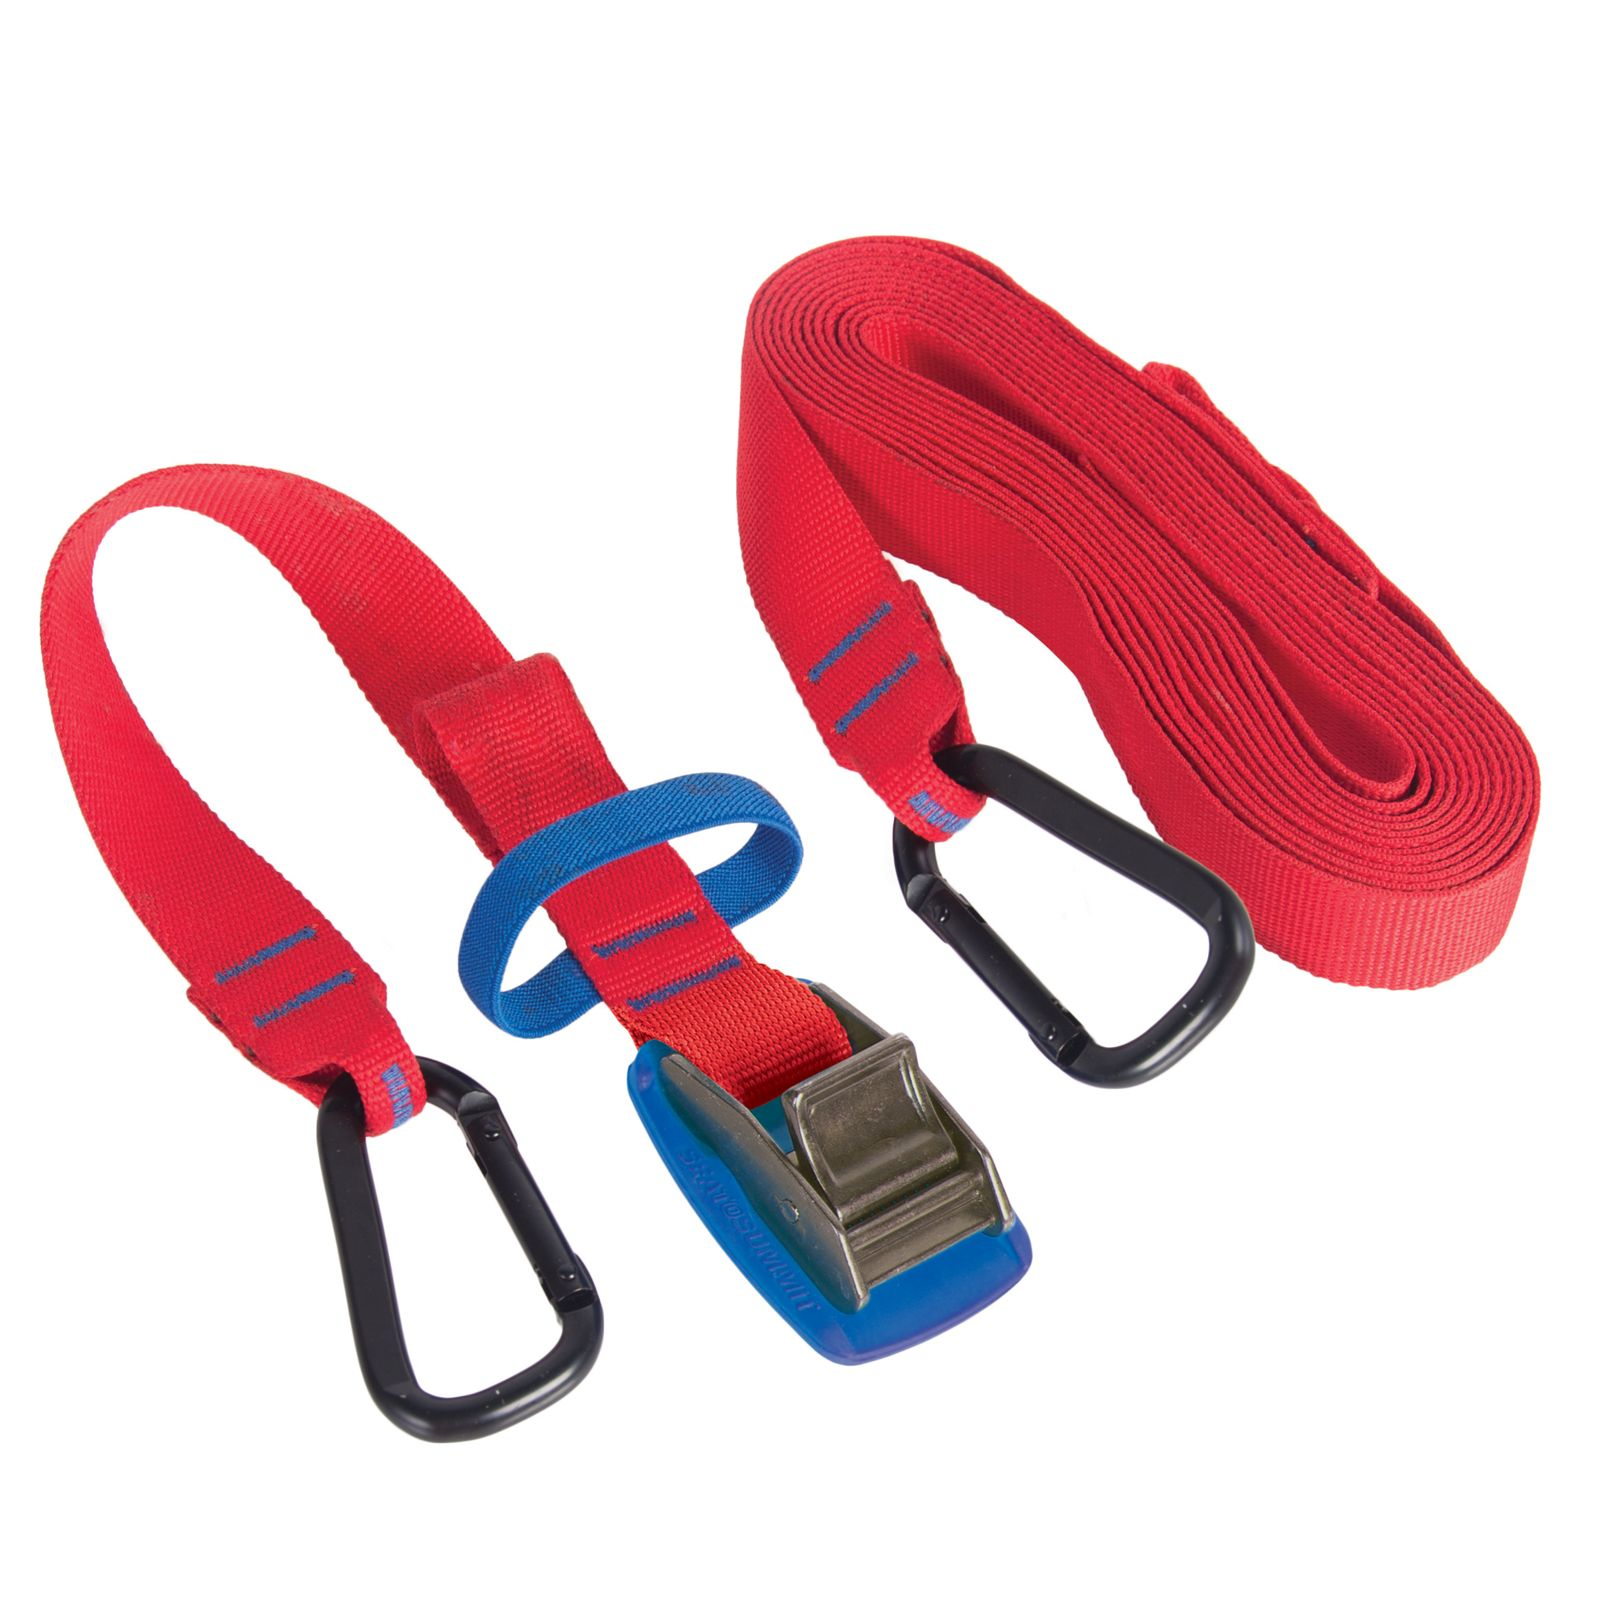 hight resolution of sea to summit l carabiner tie down l car rack accessory l kayak straps